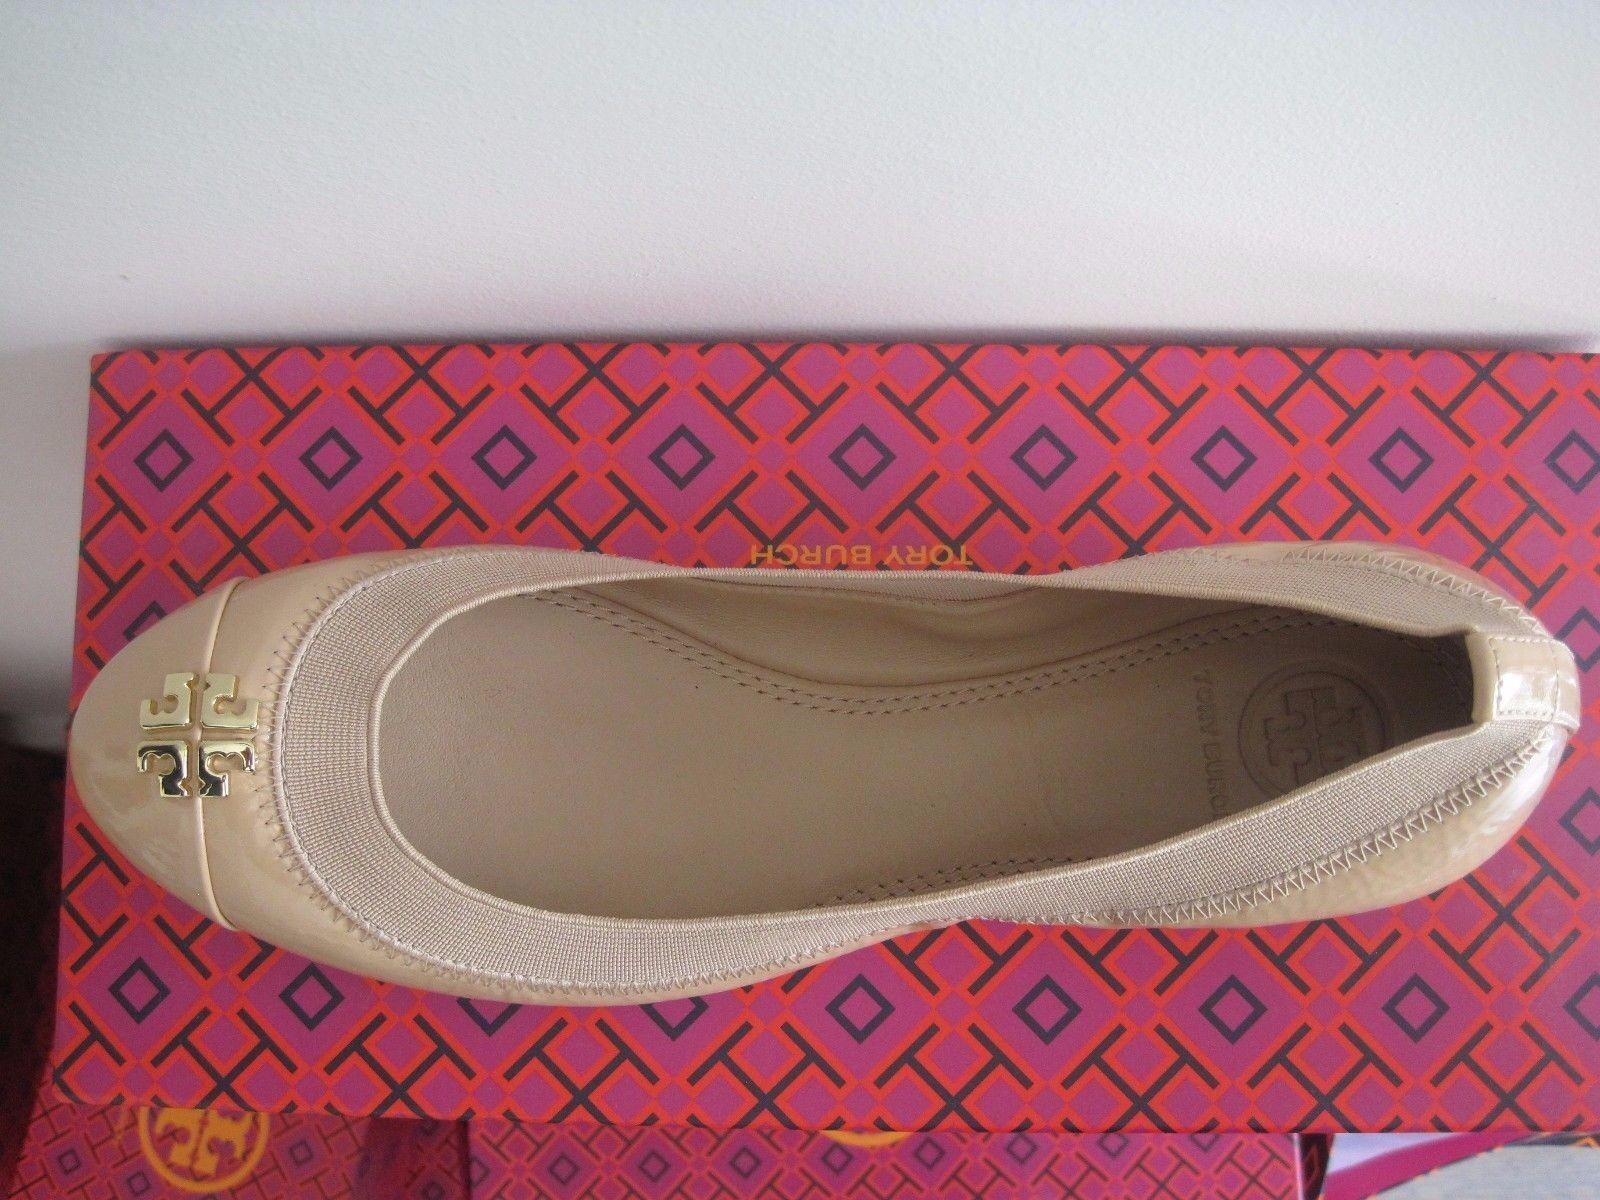 BRAND NEW  IN THE THE THE  BOX TORY BURCH JOLIE  BALLET FLAT  SIZE  9 4f6718